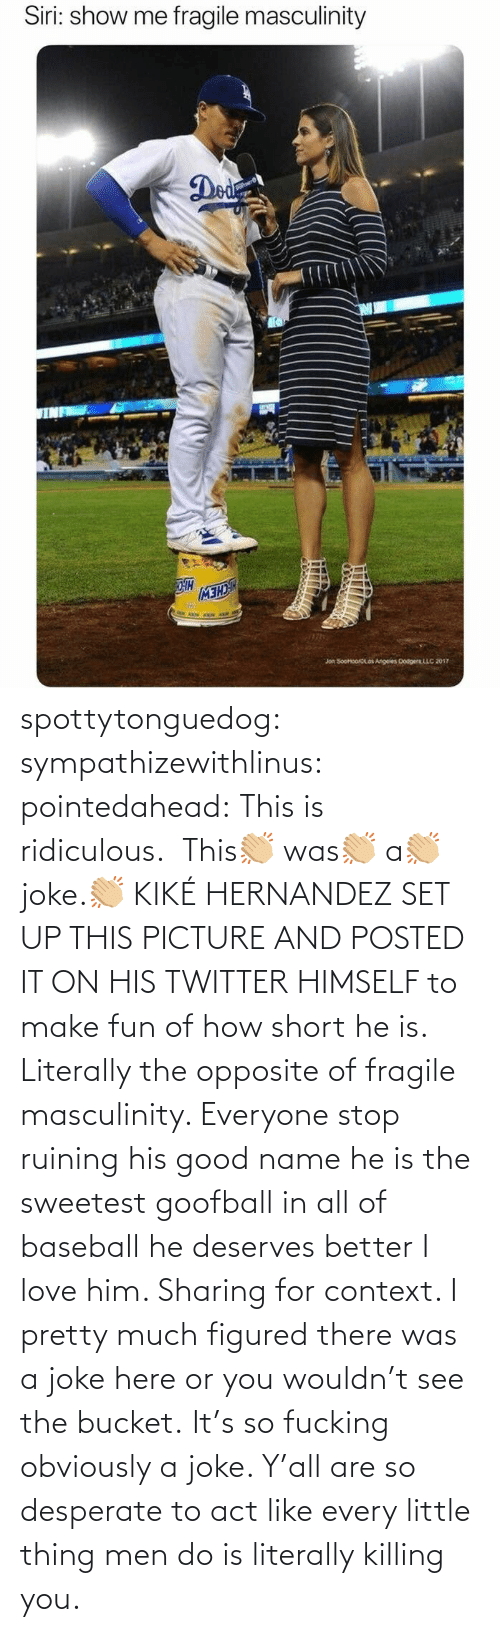 Here: spottytonguedog:  sympathizewithlinus:   pointedahead: This is ridiculous.  This👏🏼 was👏🏼 a👏🏼 joke.👏🏼 KIKÉ HERNANDEZ SET UP THIS PICTURE AND POSTED IT ON HIS TWITTER HIMSELF to make fun of how short he is. Literally the opposite of fragile masculinity. Everyone stop ruining his good name he is the sweetest goofball in all of baseball he deserves better I love him.    Sharing for context. I pretty much figured there was a joke here or you wouldn't see the bucket.    It's so fucking obviously a joke. Y'all are so desperate to act like every little thing men do is literally killing you.